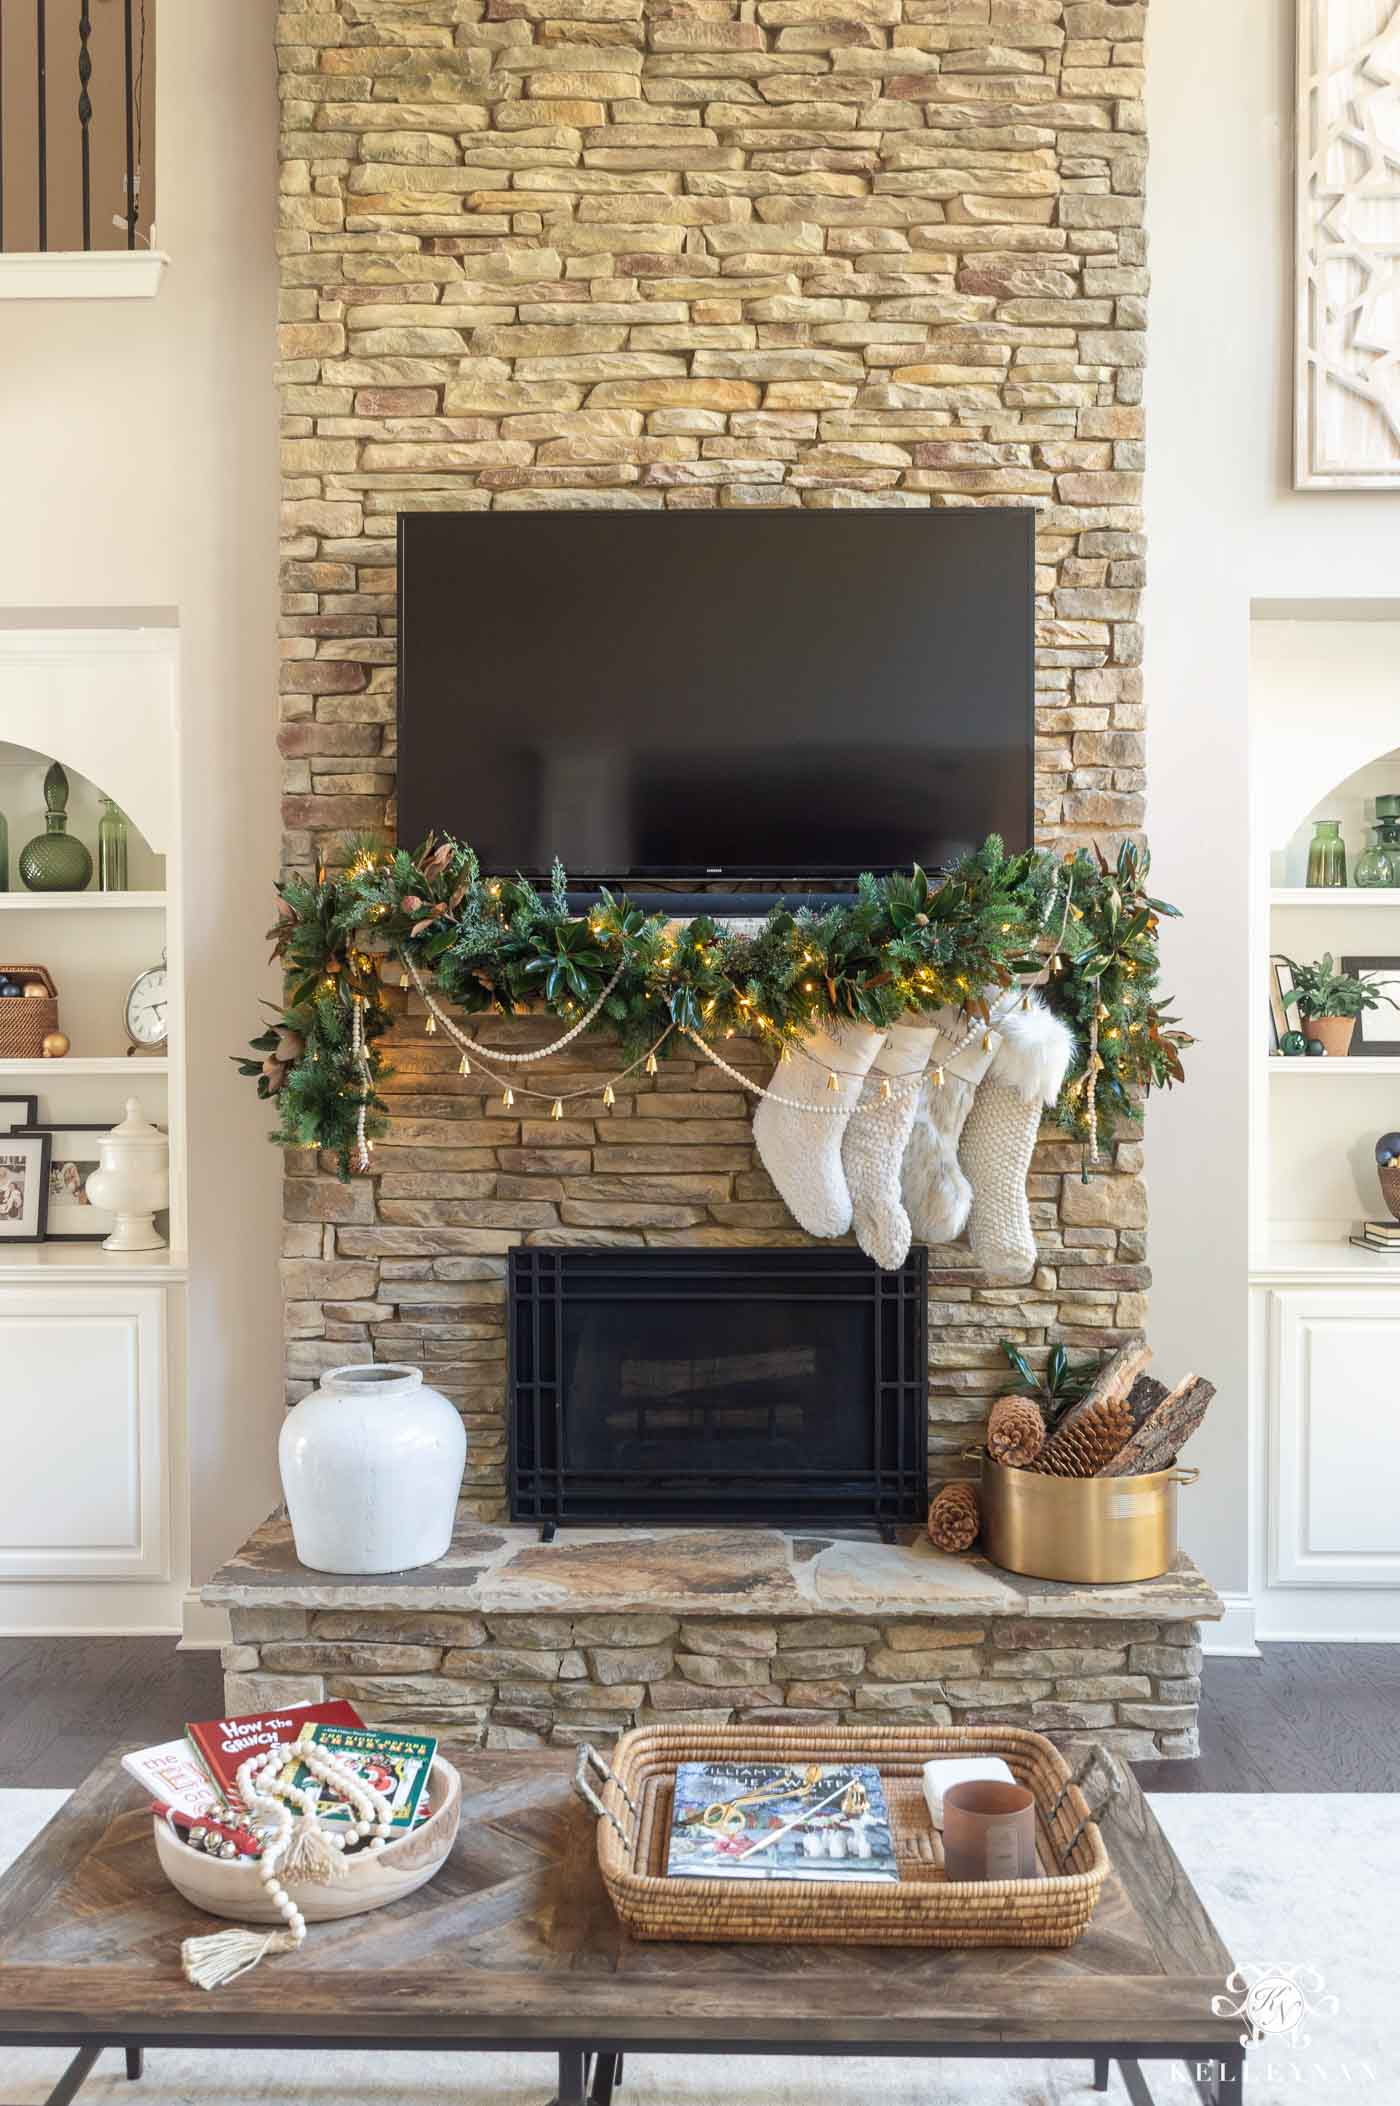 How to Hang and Decorate Christmas Mantel Garland